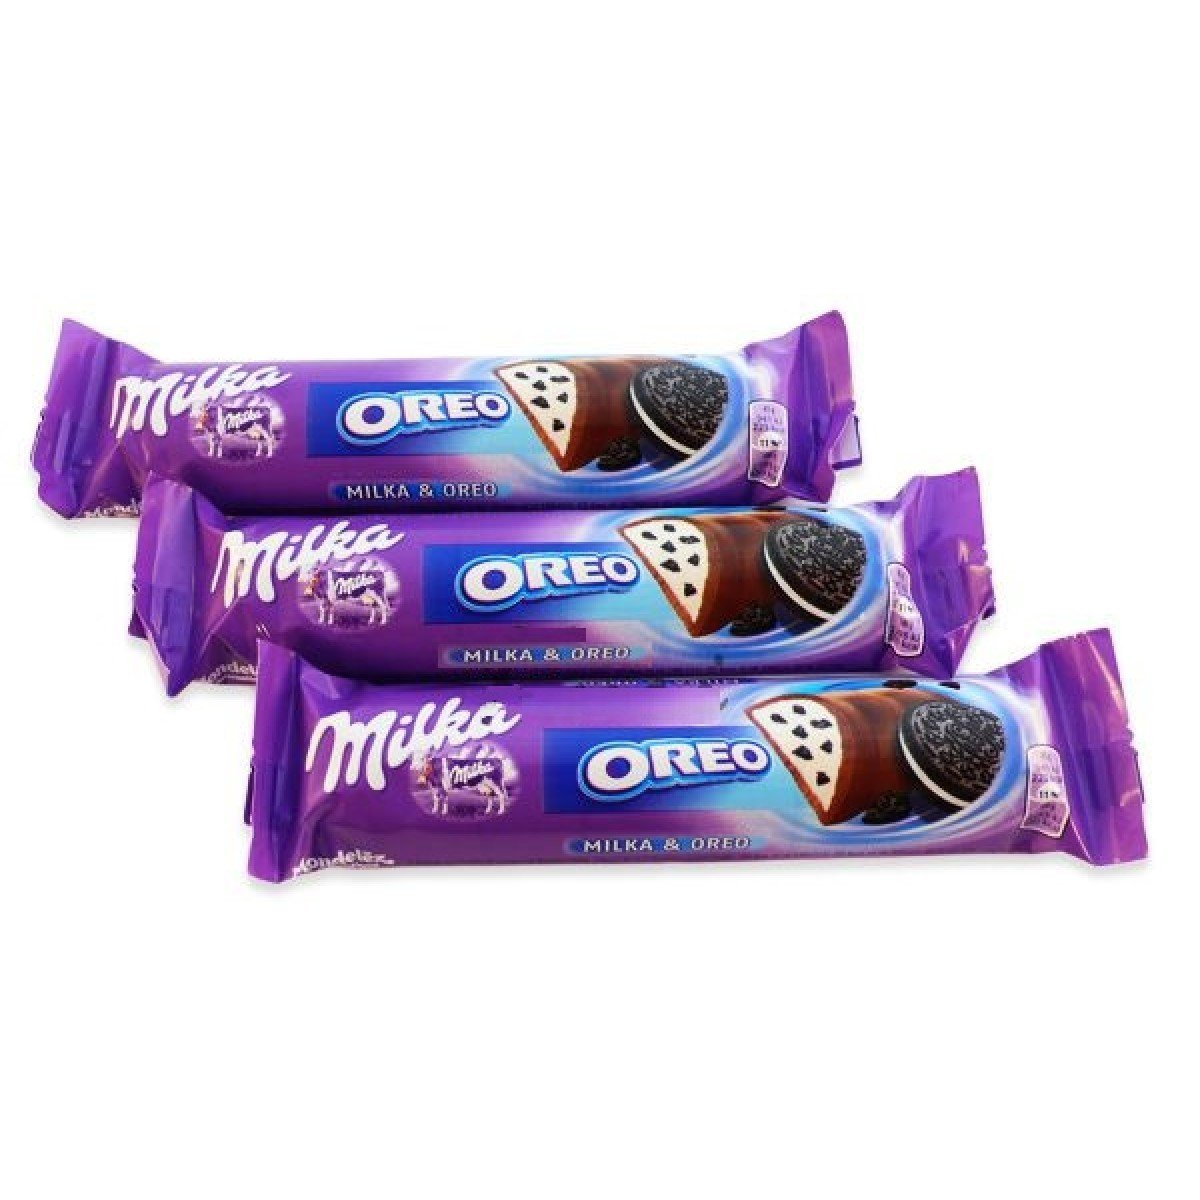 Milka & Oreo Chocolate Bar Pack of 5 x 41 grams Snack Size by Milka